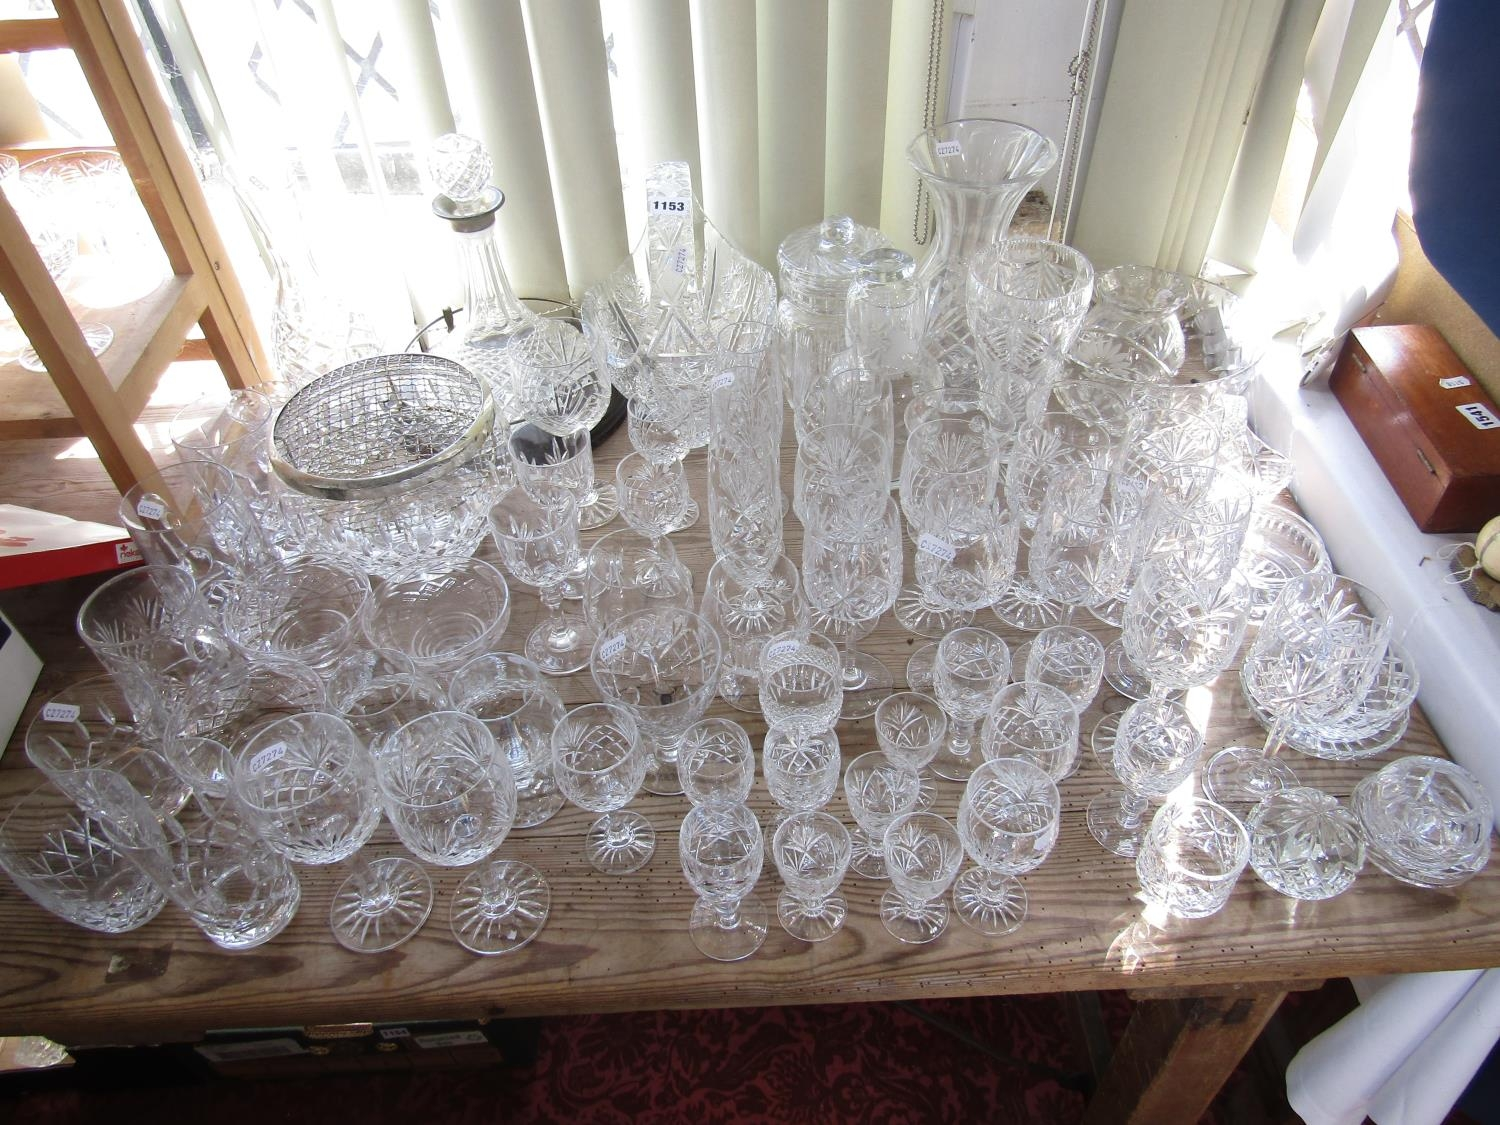 A large collection of cut glass to include goblets, decanters, bowls, together with a small - Bild 2 aus 2